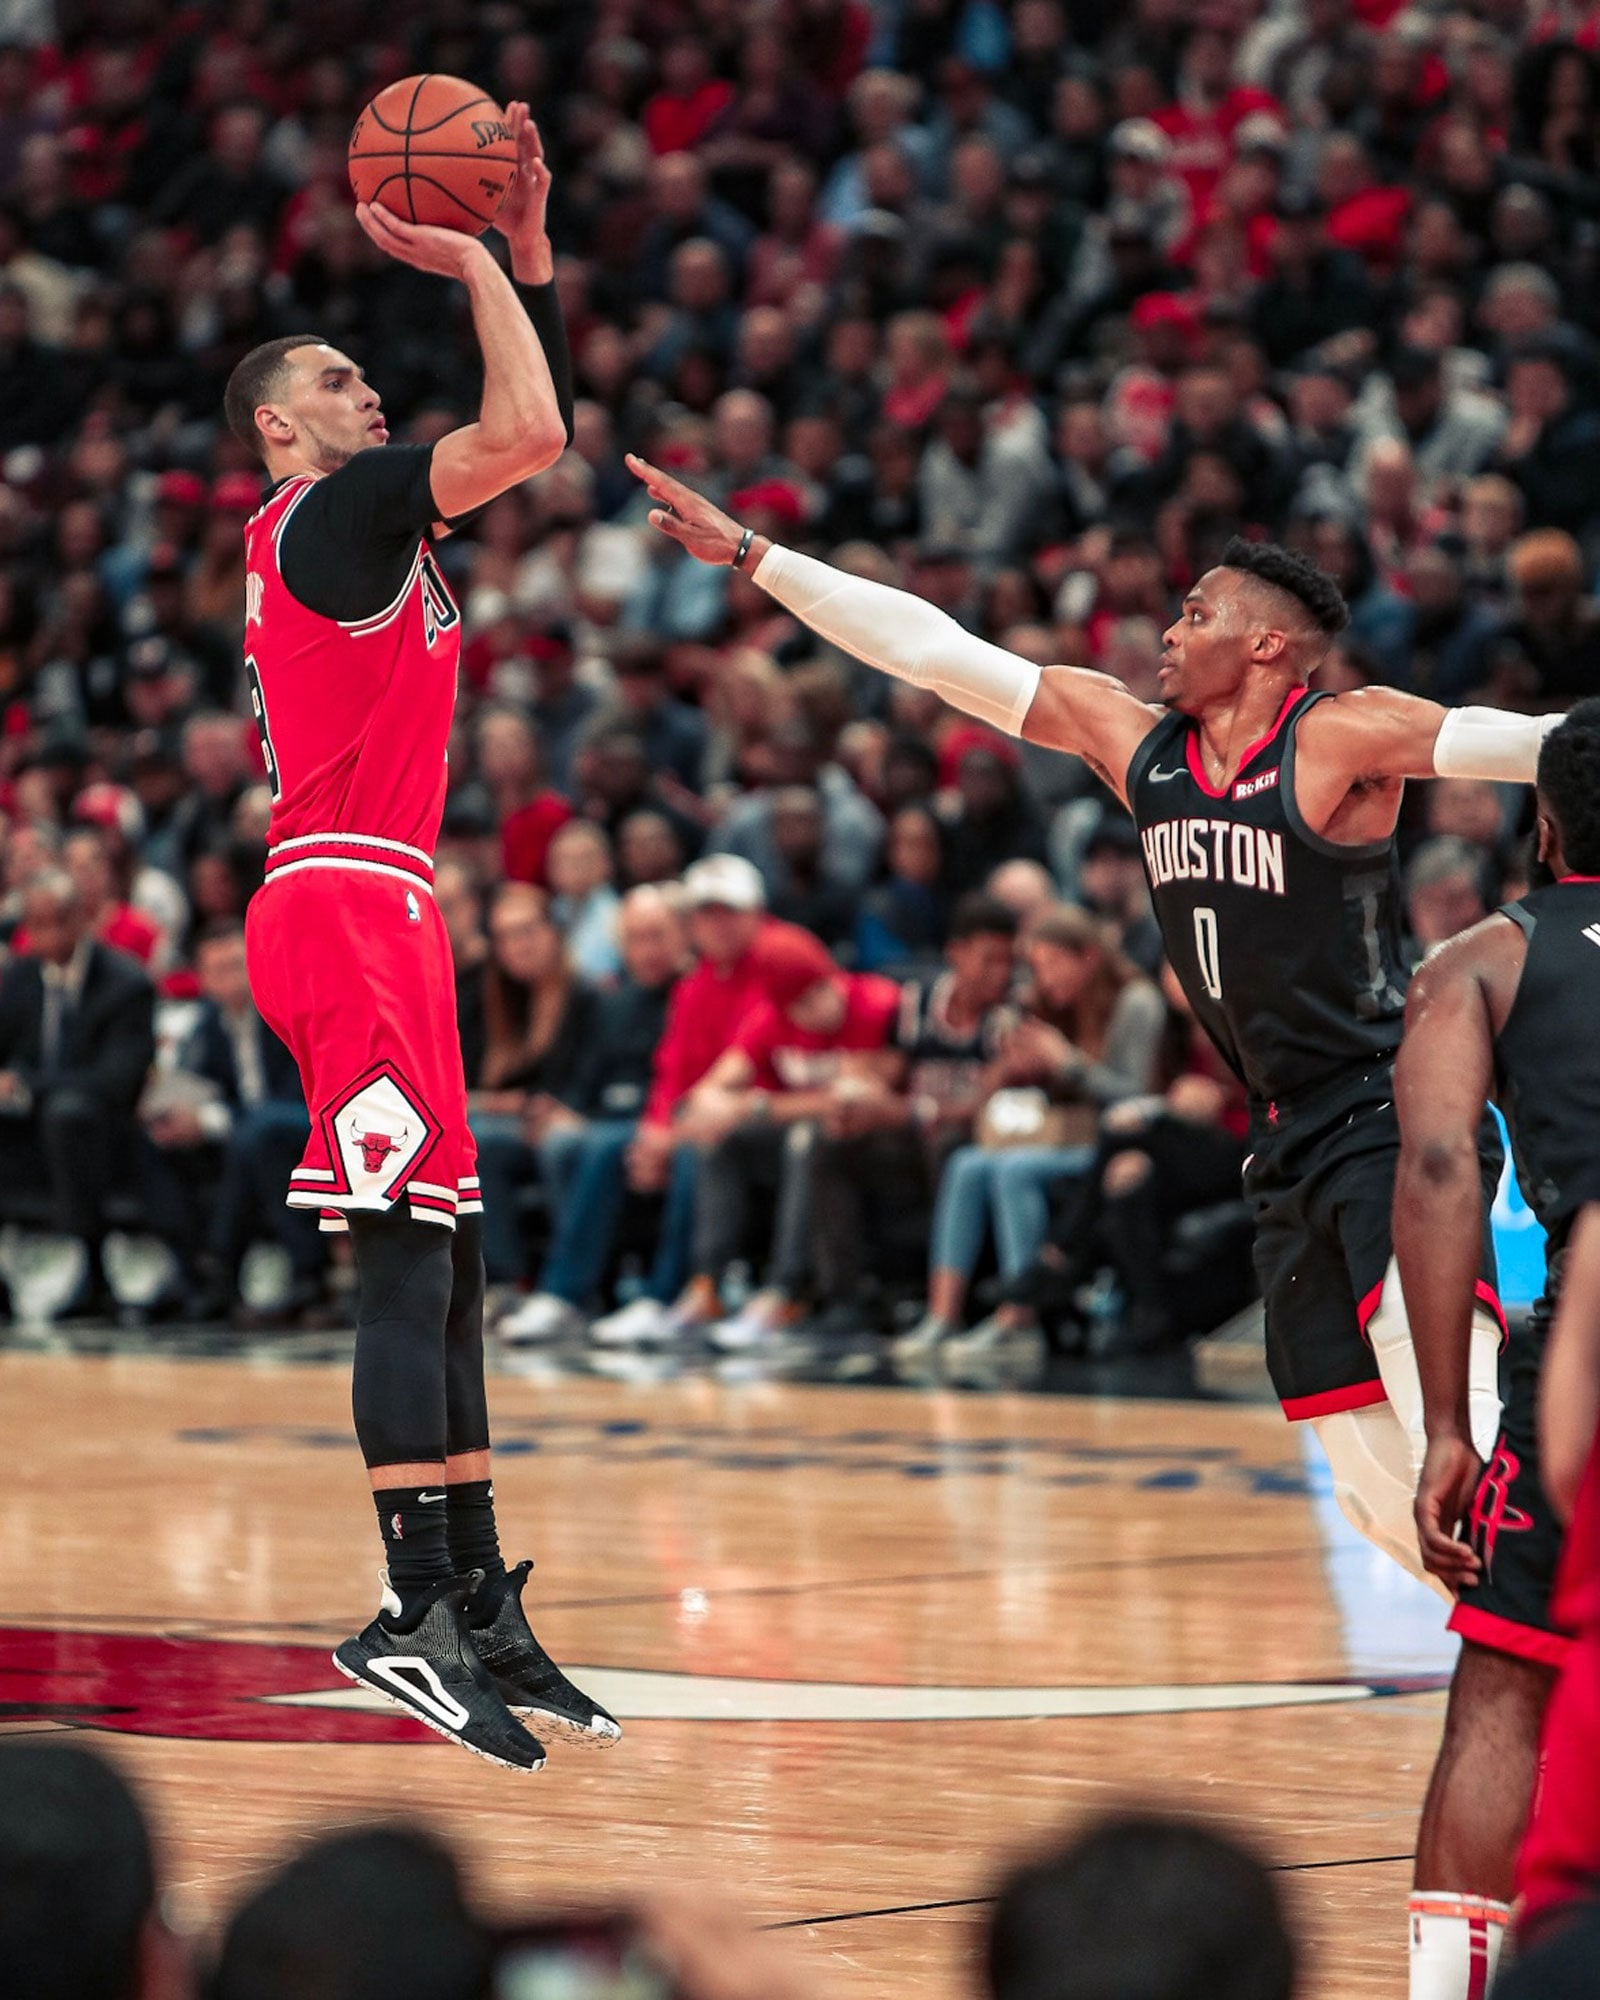 Zach LaVine shoots a three against Houston's Russell Westbrook.